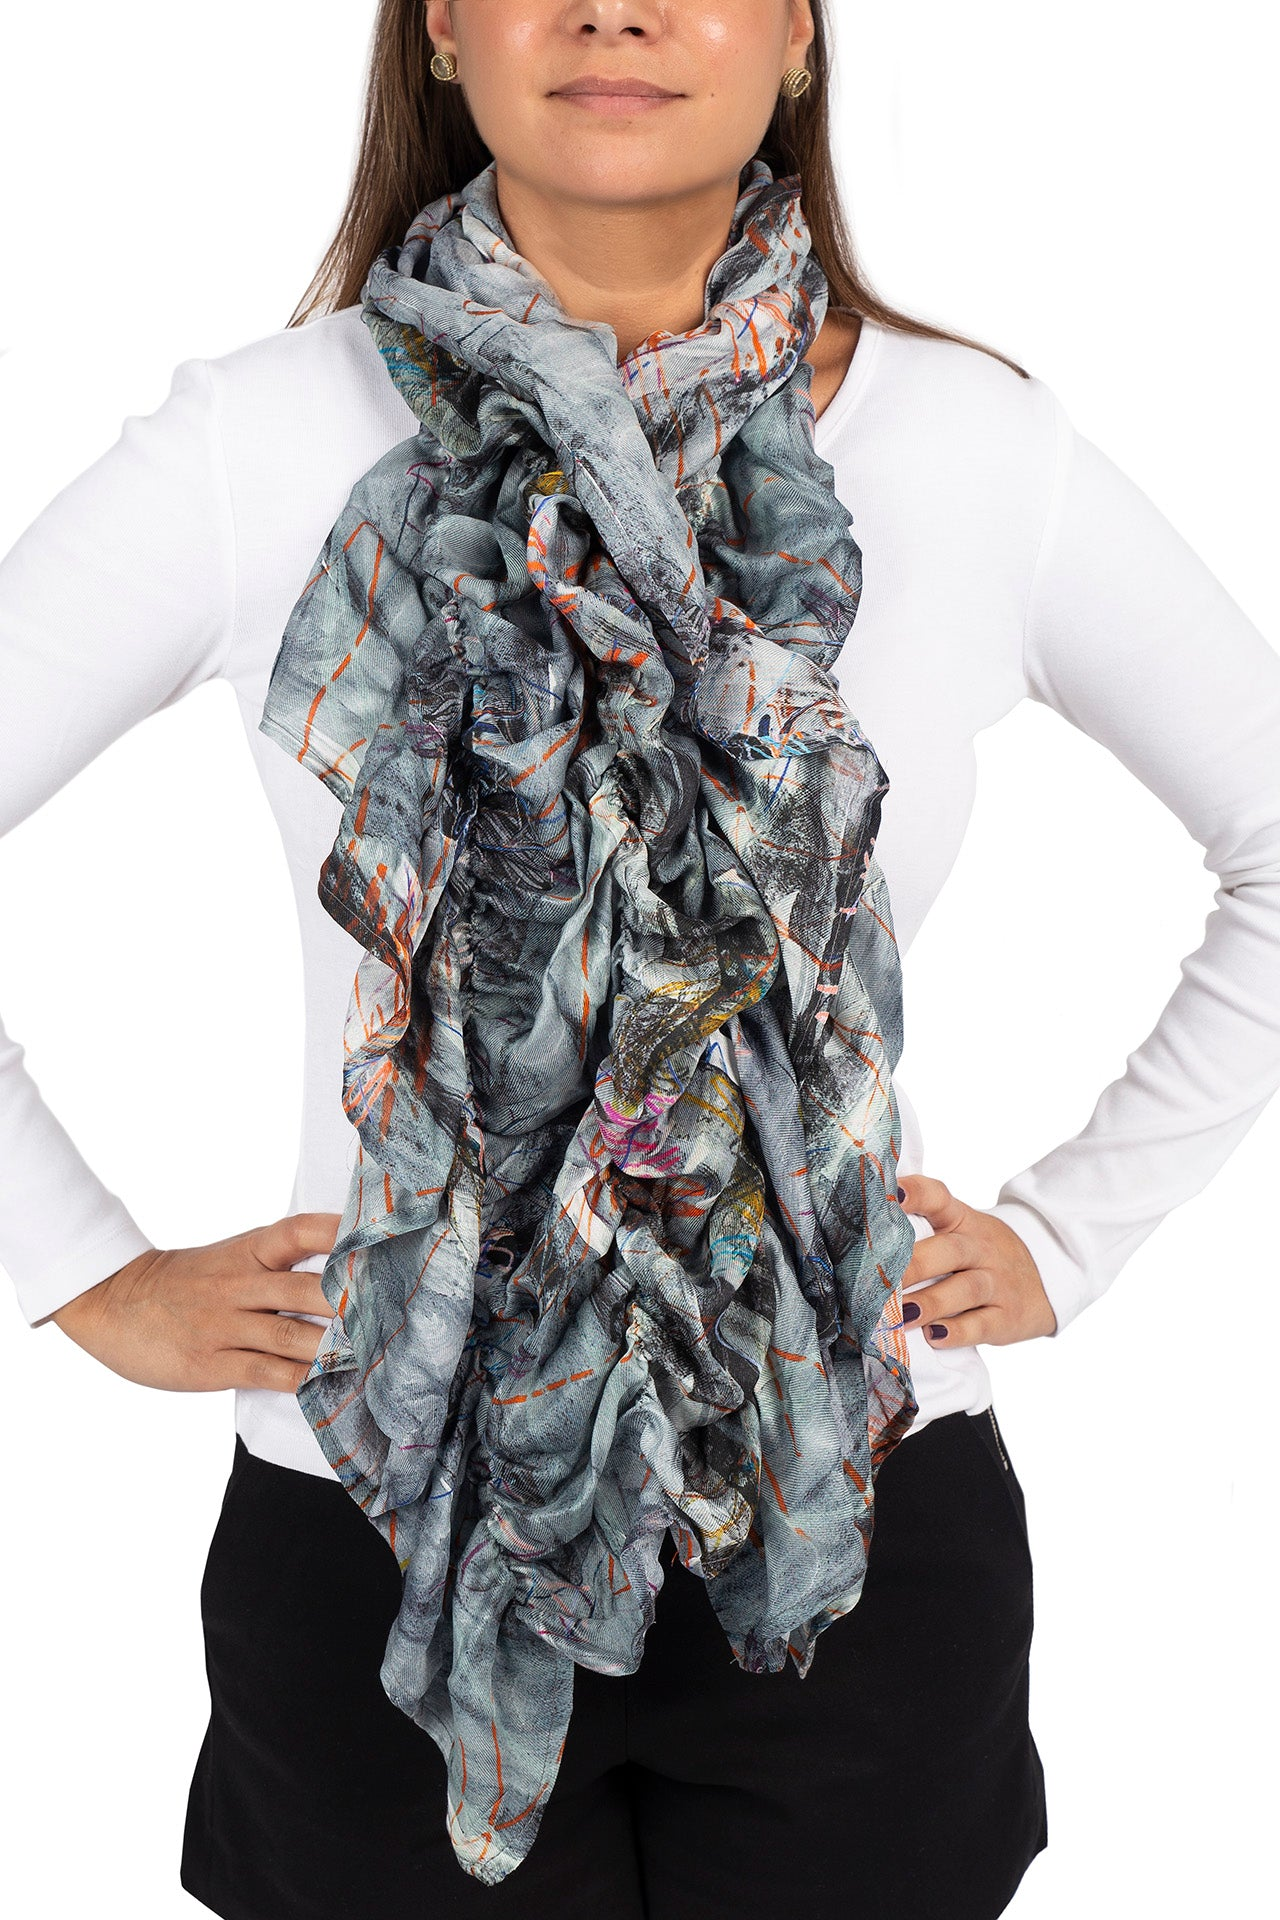 Tondo Ruffle Scarf - Gray Abstract Print Scarves - artTECA